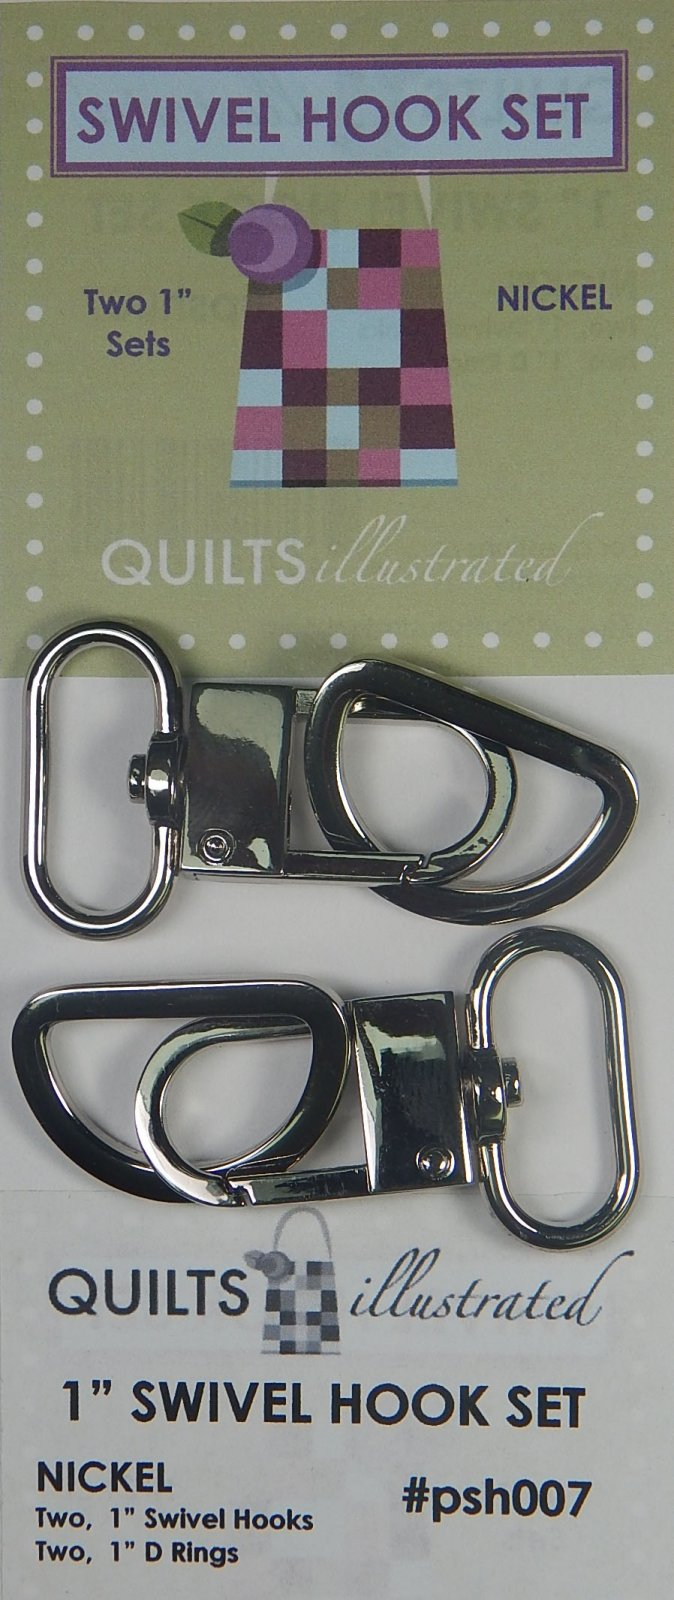 1 Swivel Hook Set - Nickel - psh007